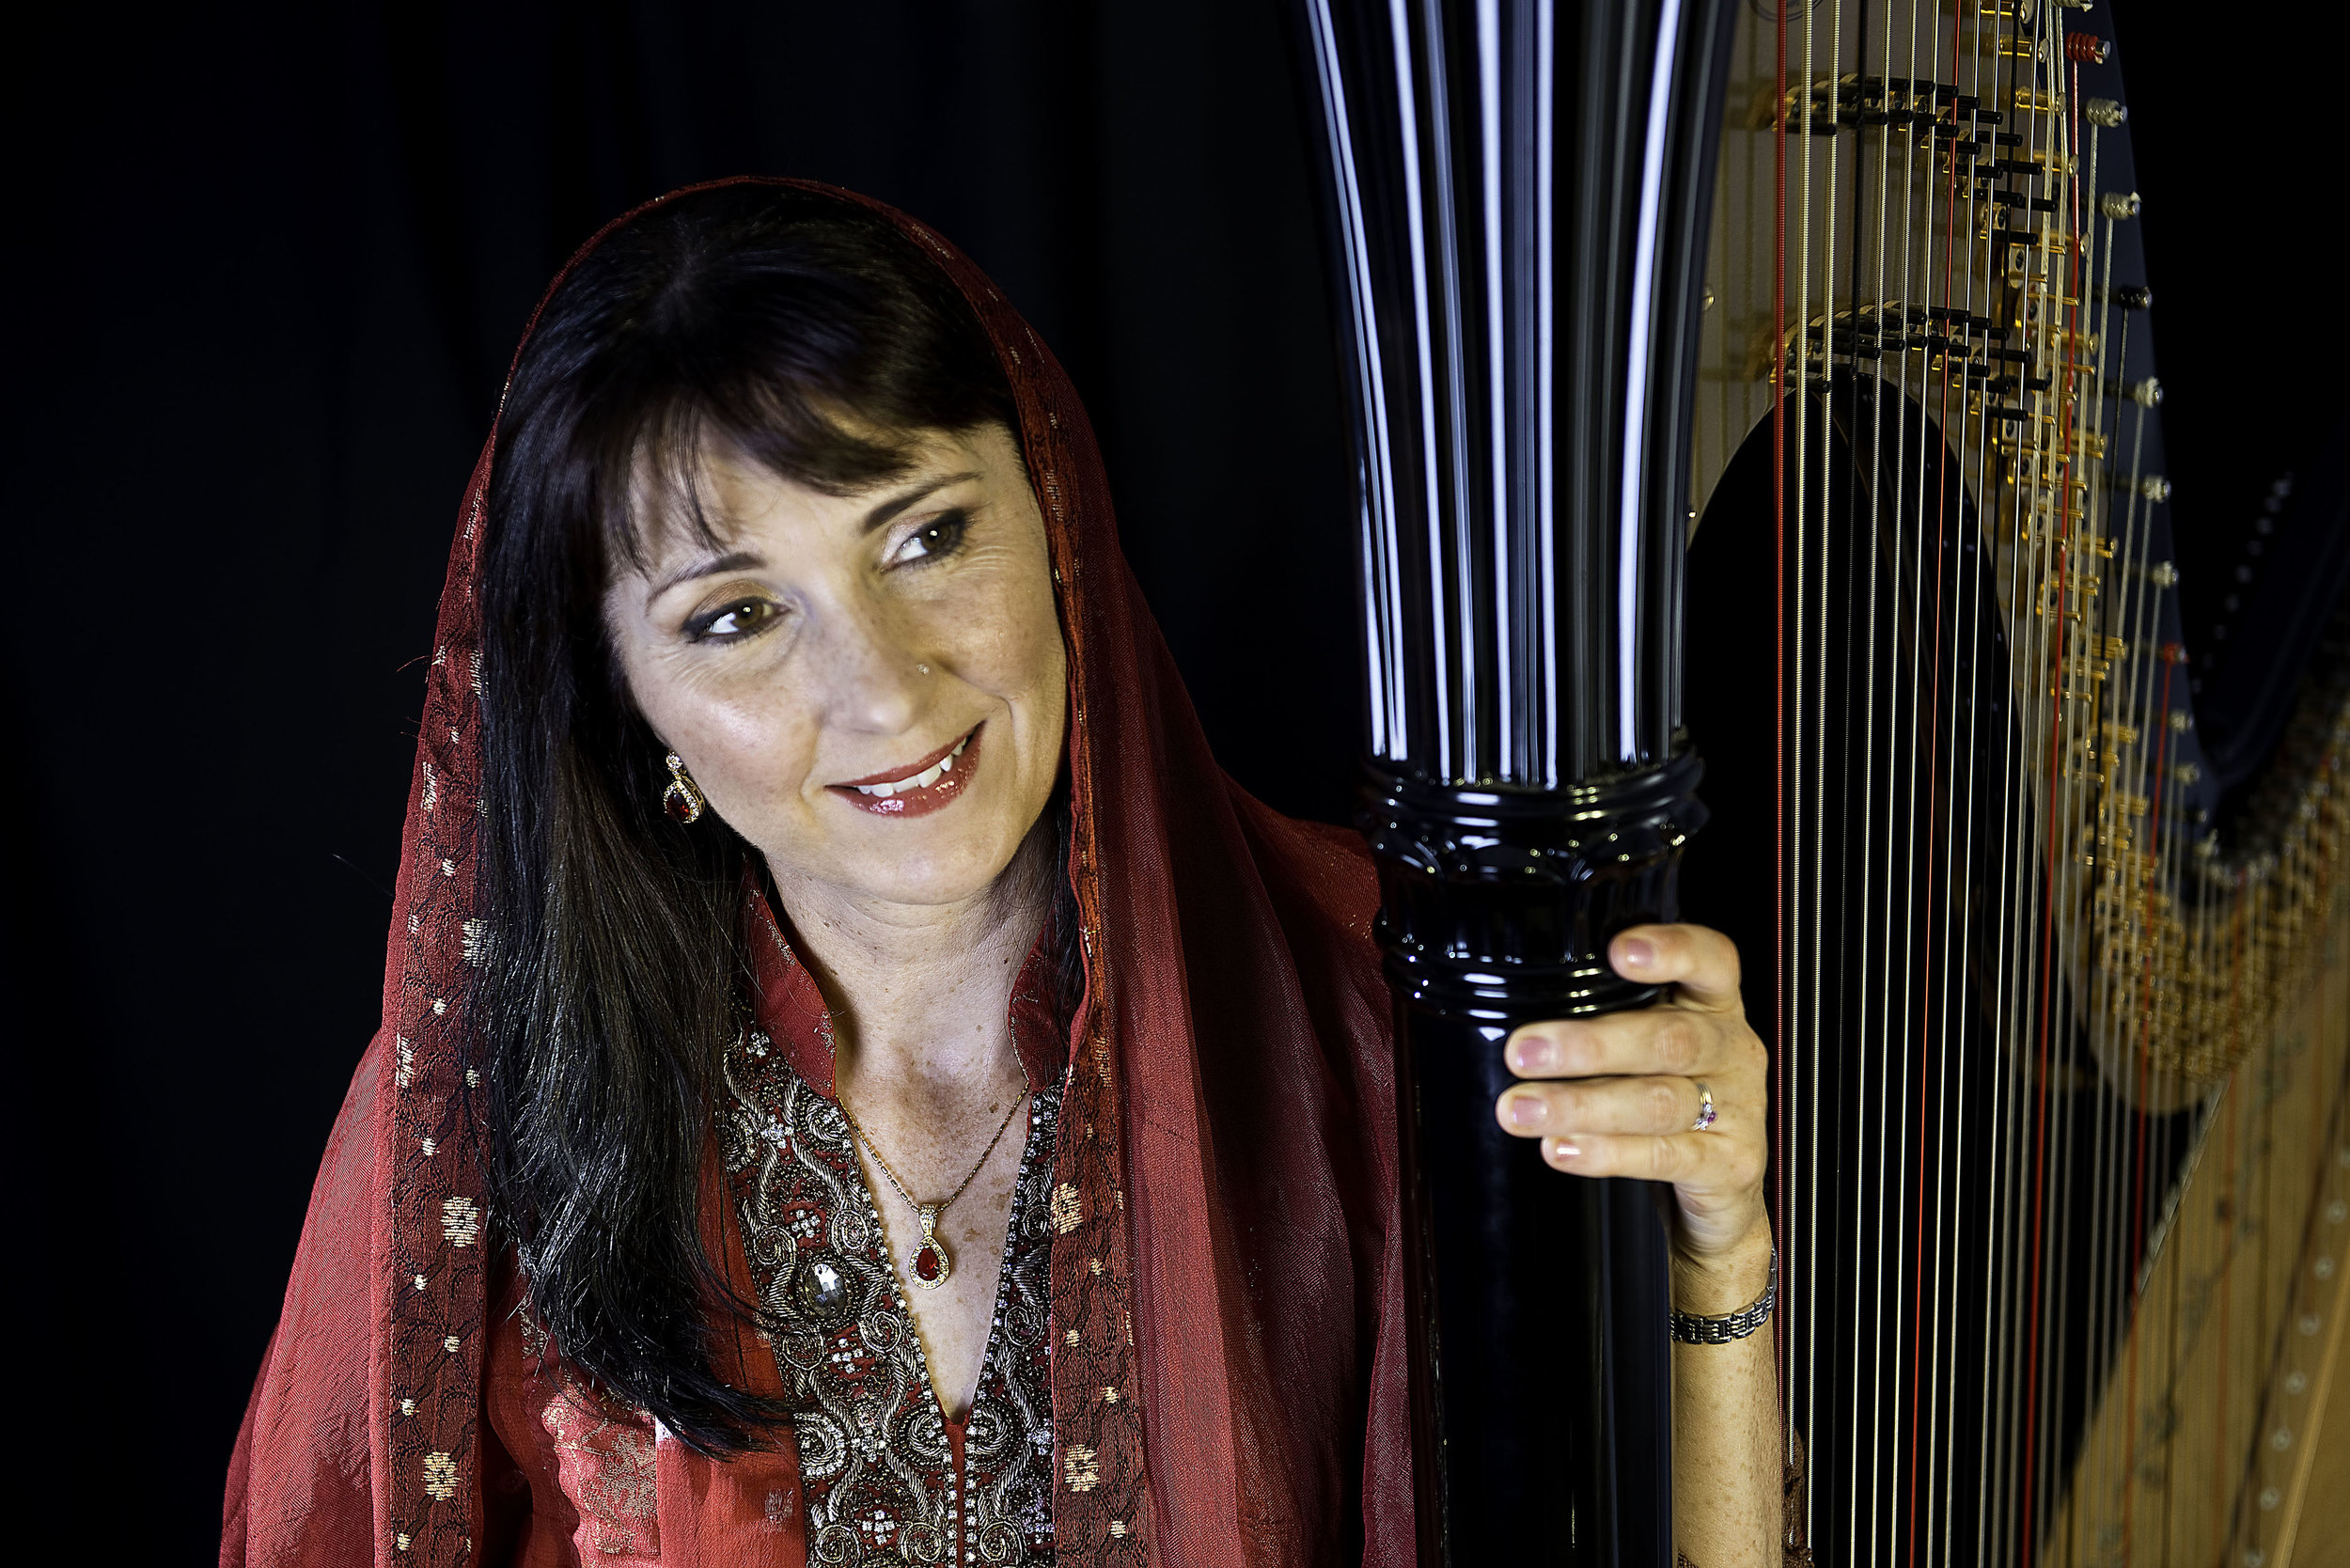 Oona plays at weddings including Asian weddings with a long Bollywood repertoire